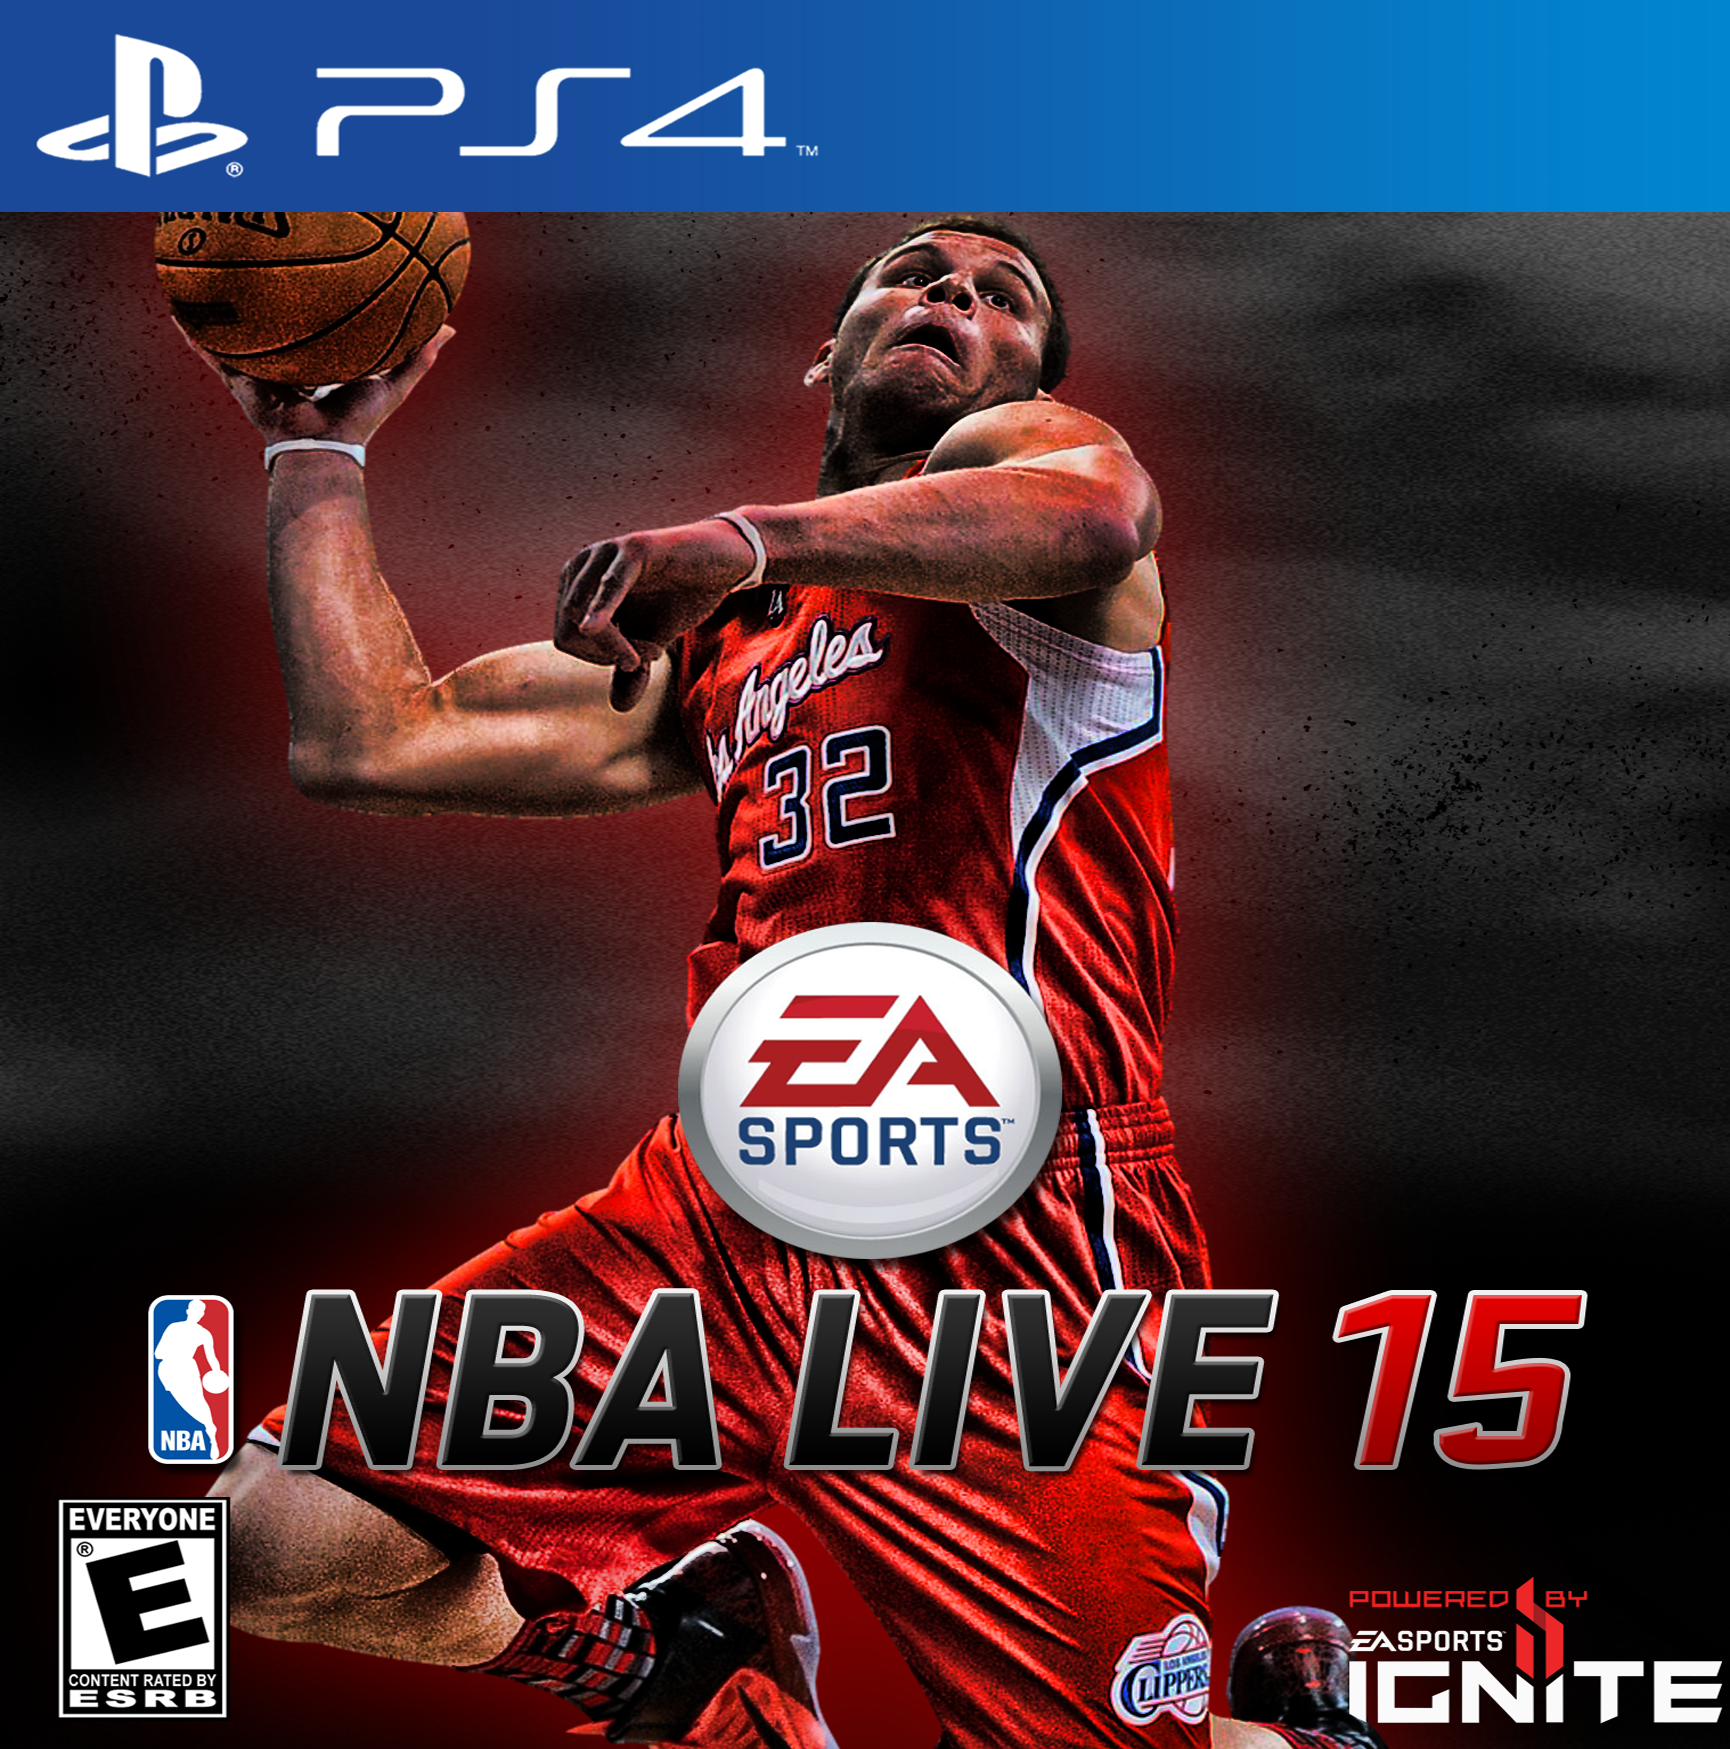 nba 15 delayed for xbox one ps4 nba 2k15 release for. Black Bedroom Furniture Sets. Home Design Ideas